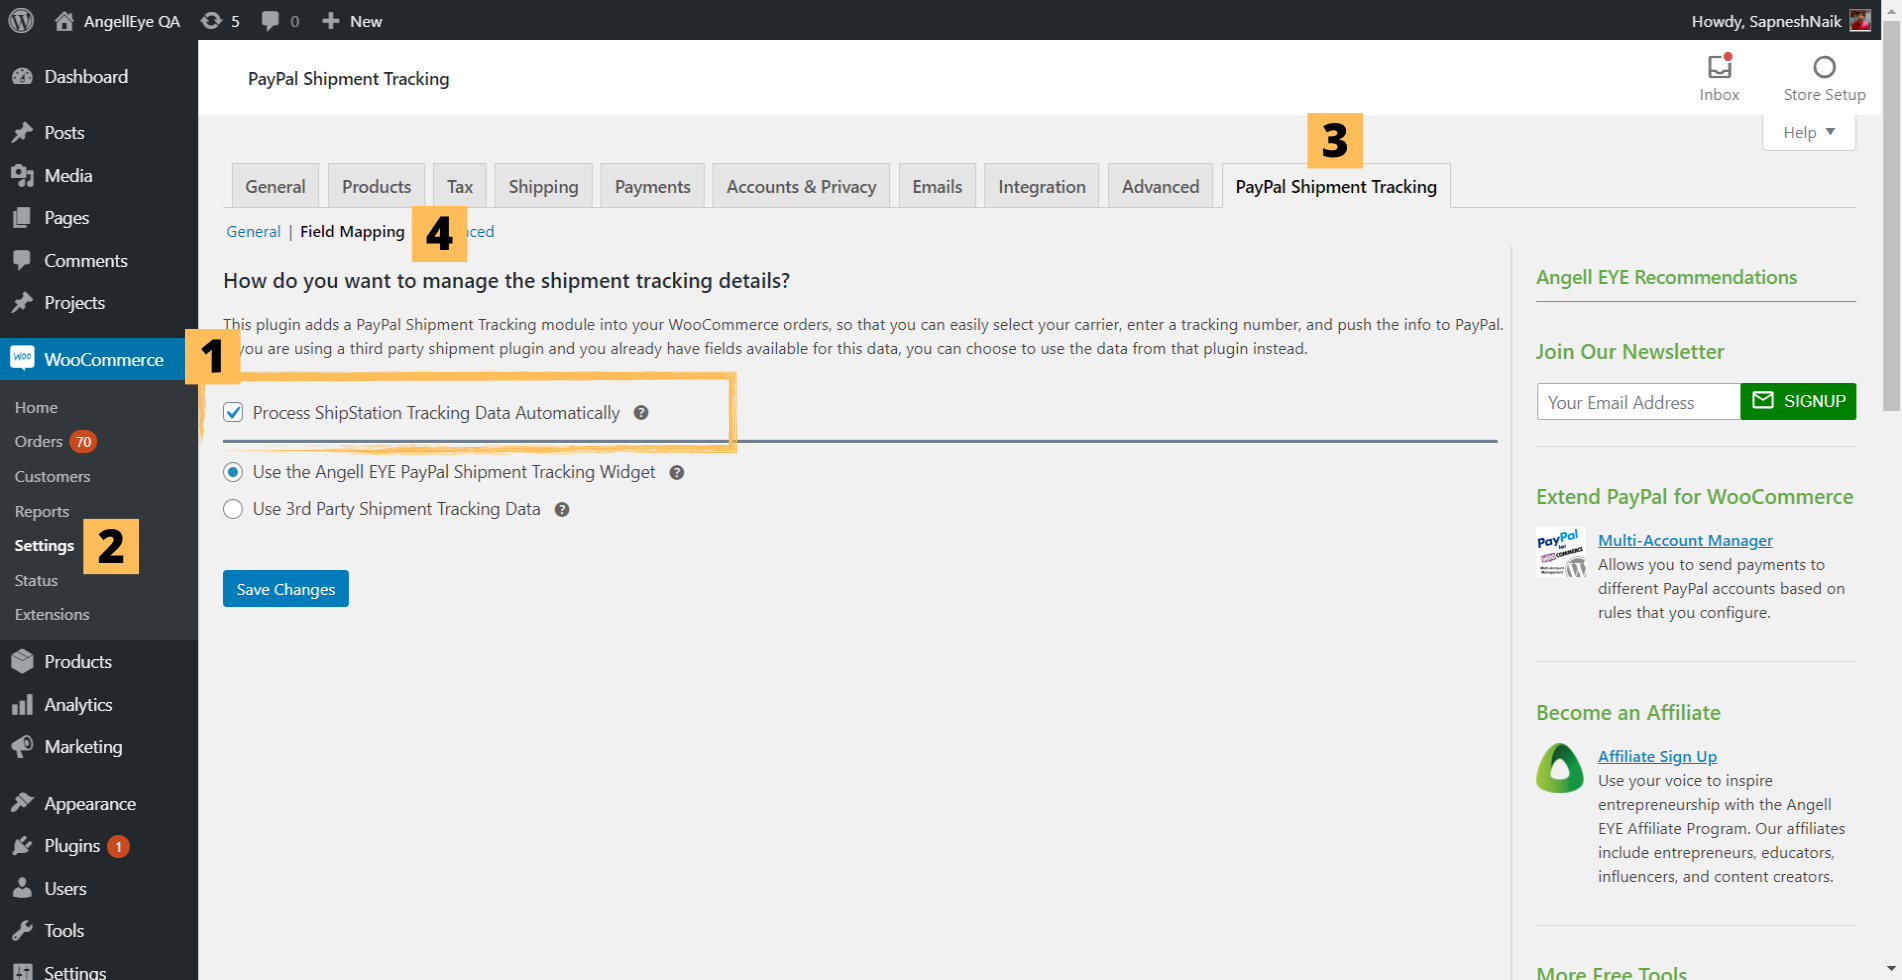 Step 2: Shipstation with PayPal Shipment Tracking for WooCommerce Plugin